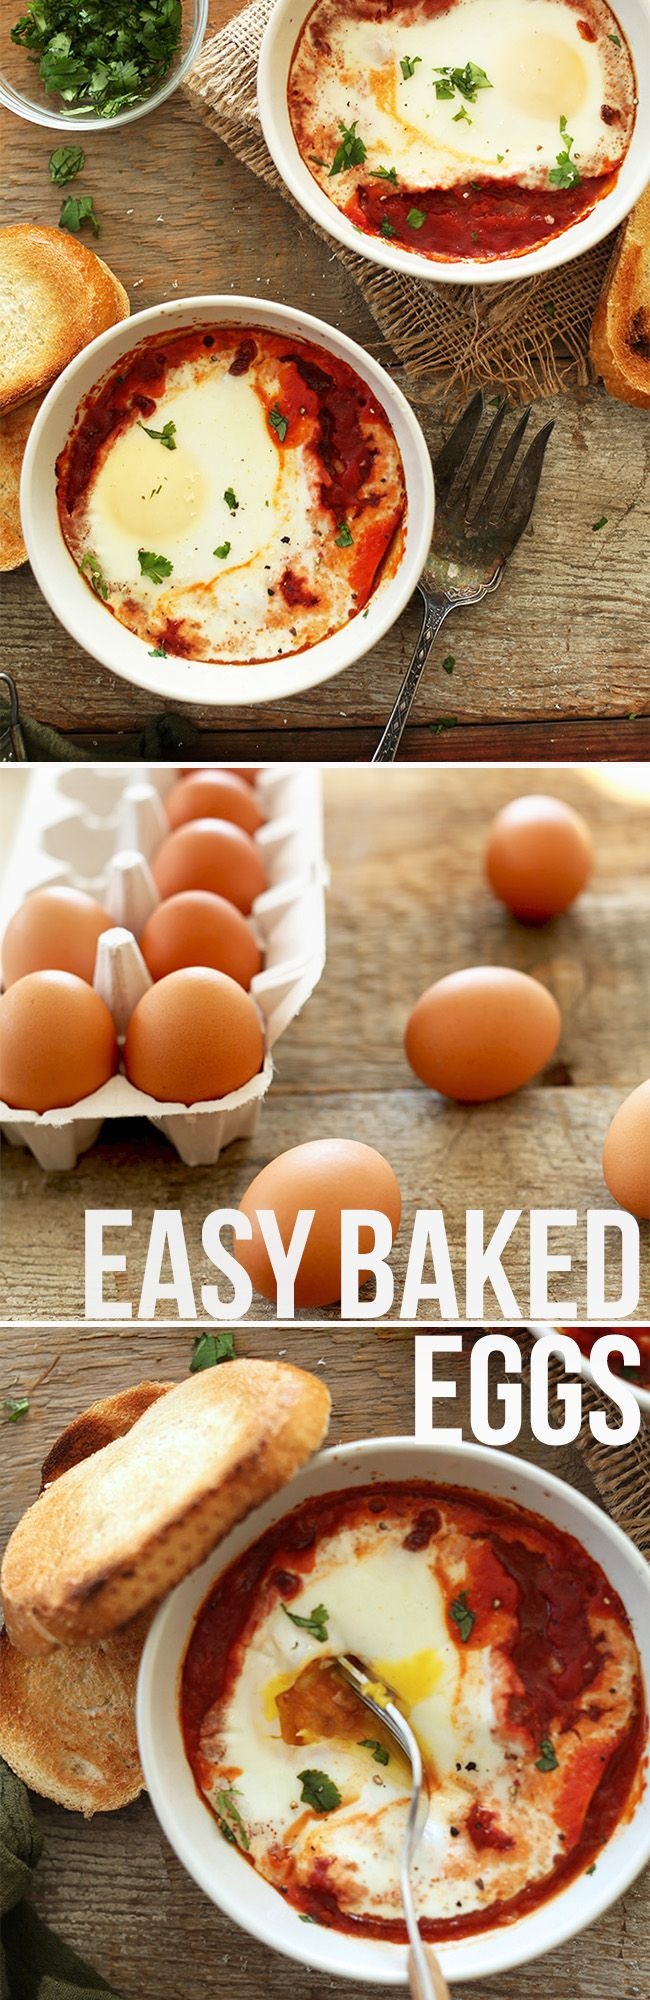 Easy Baked Eggs! The perfect weekend brunch or lazy morning healthy breakfast. | minimalistbaker.com